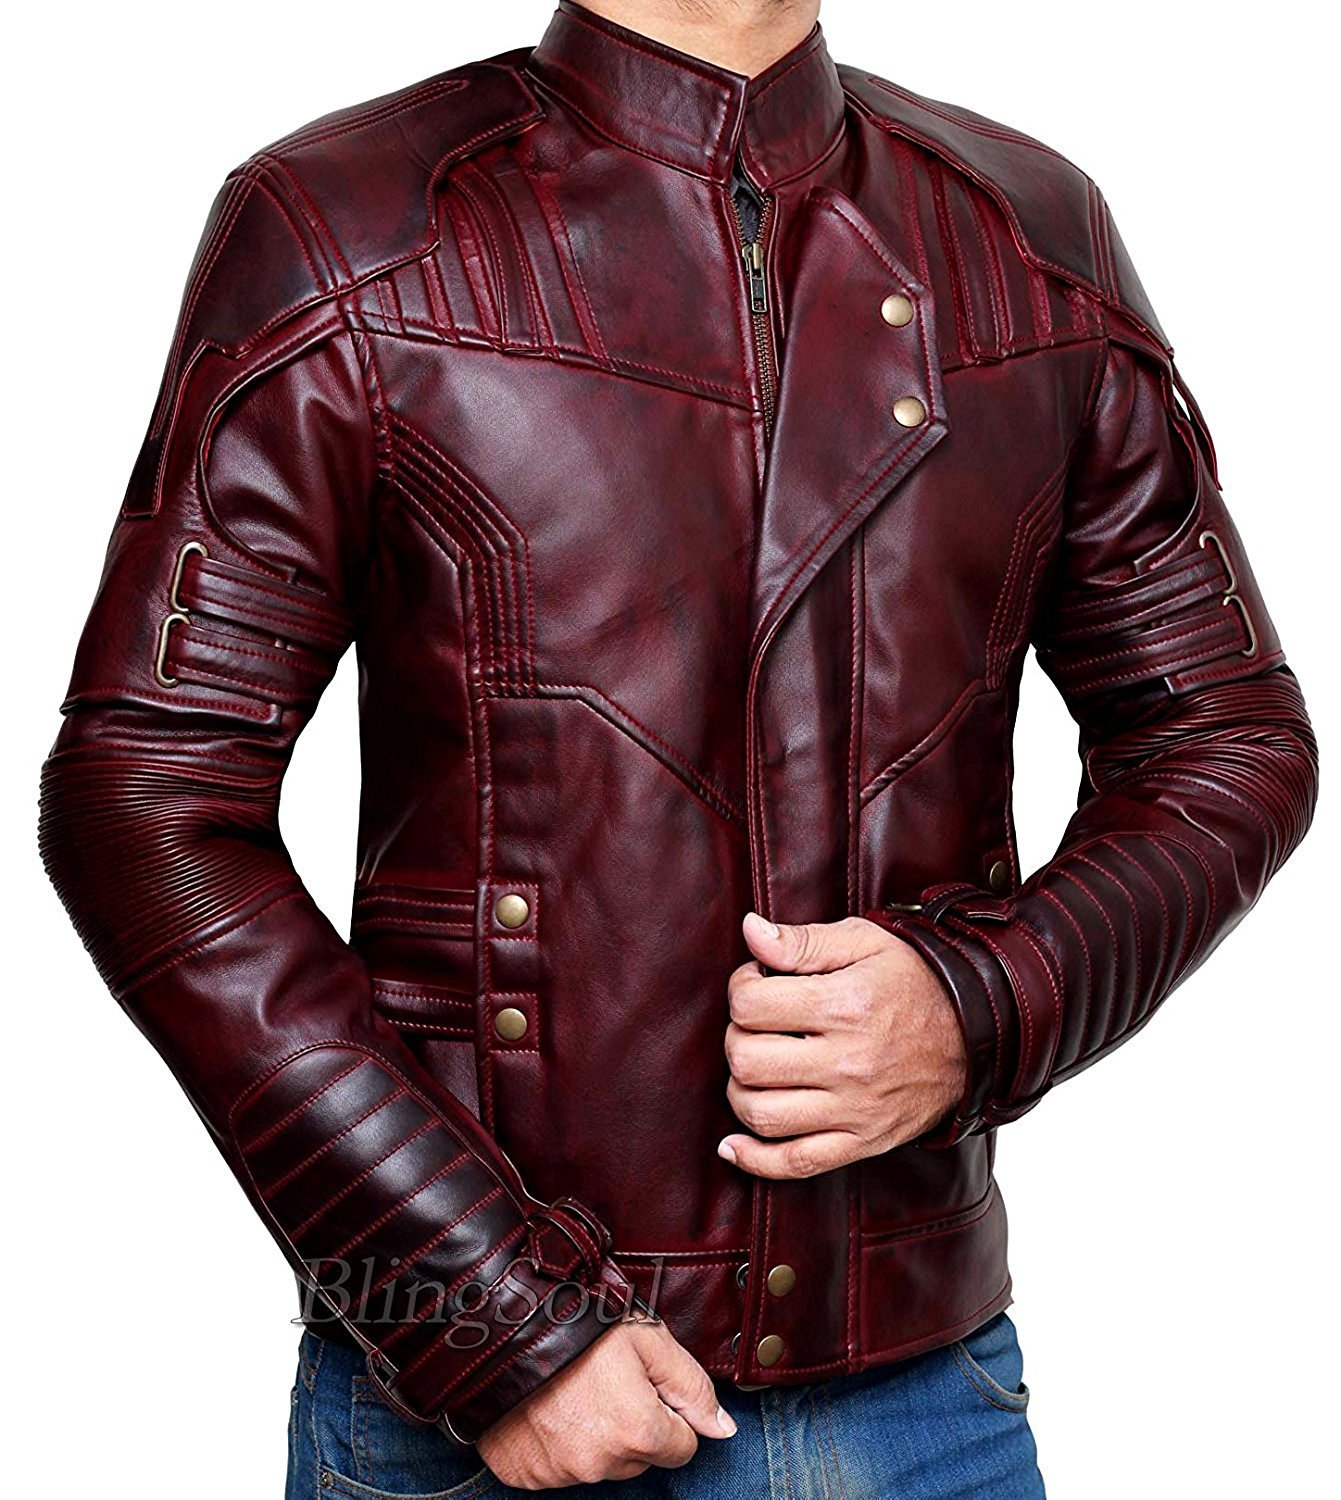 BlingSoul Superhero Costume PU Leather Jacket Collection (S, Star Lord Red) [PU-GLX3-RD-S] by BlingSoul